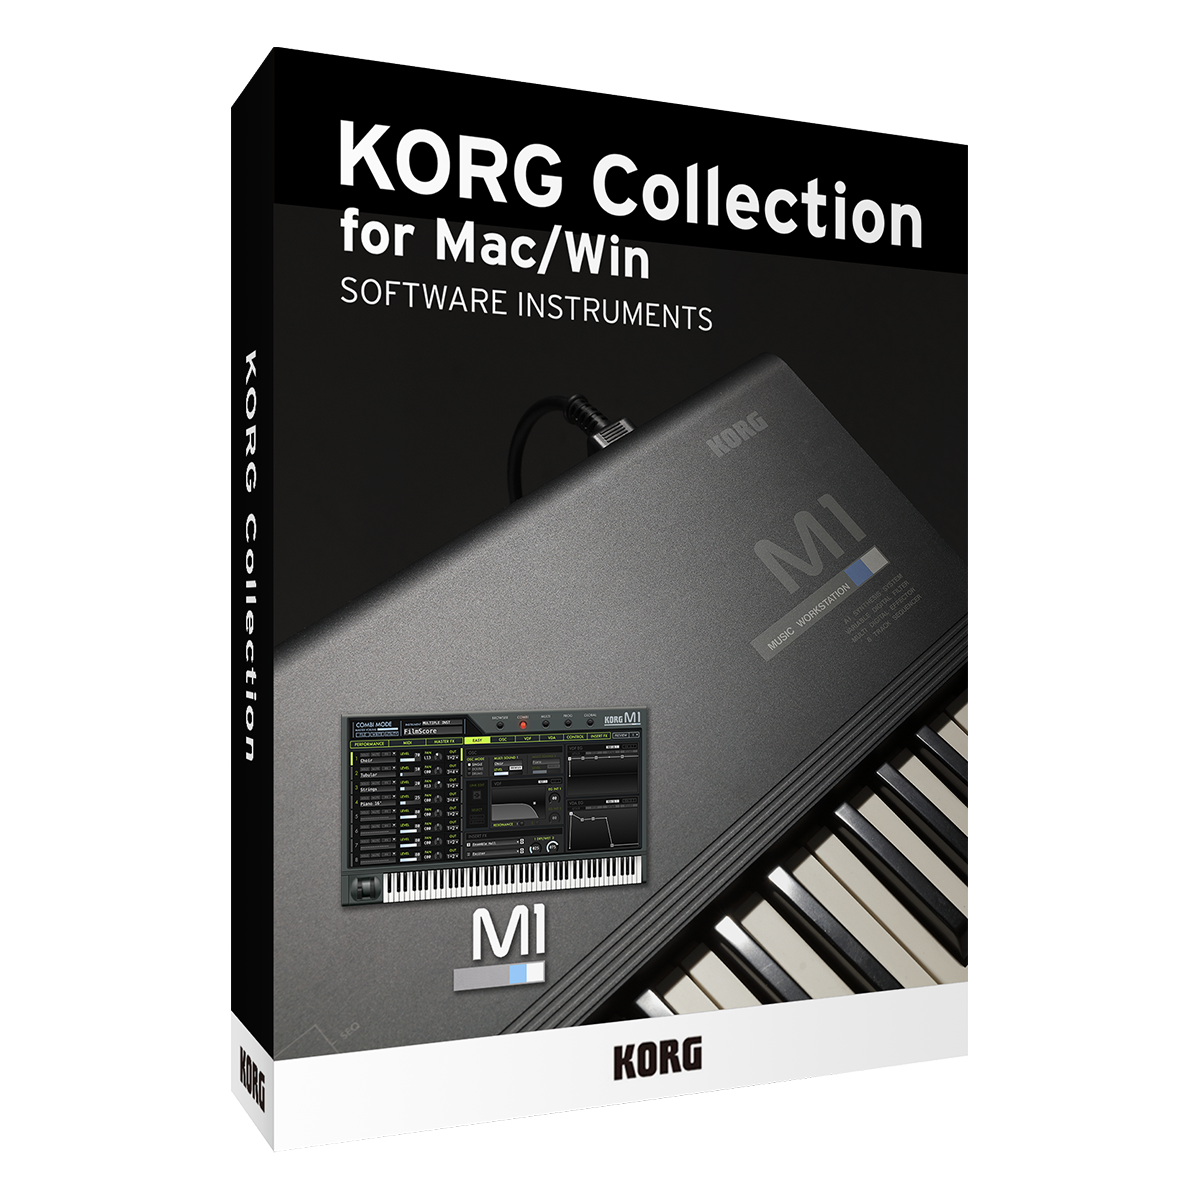 KORG Collection 3 - M1